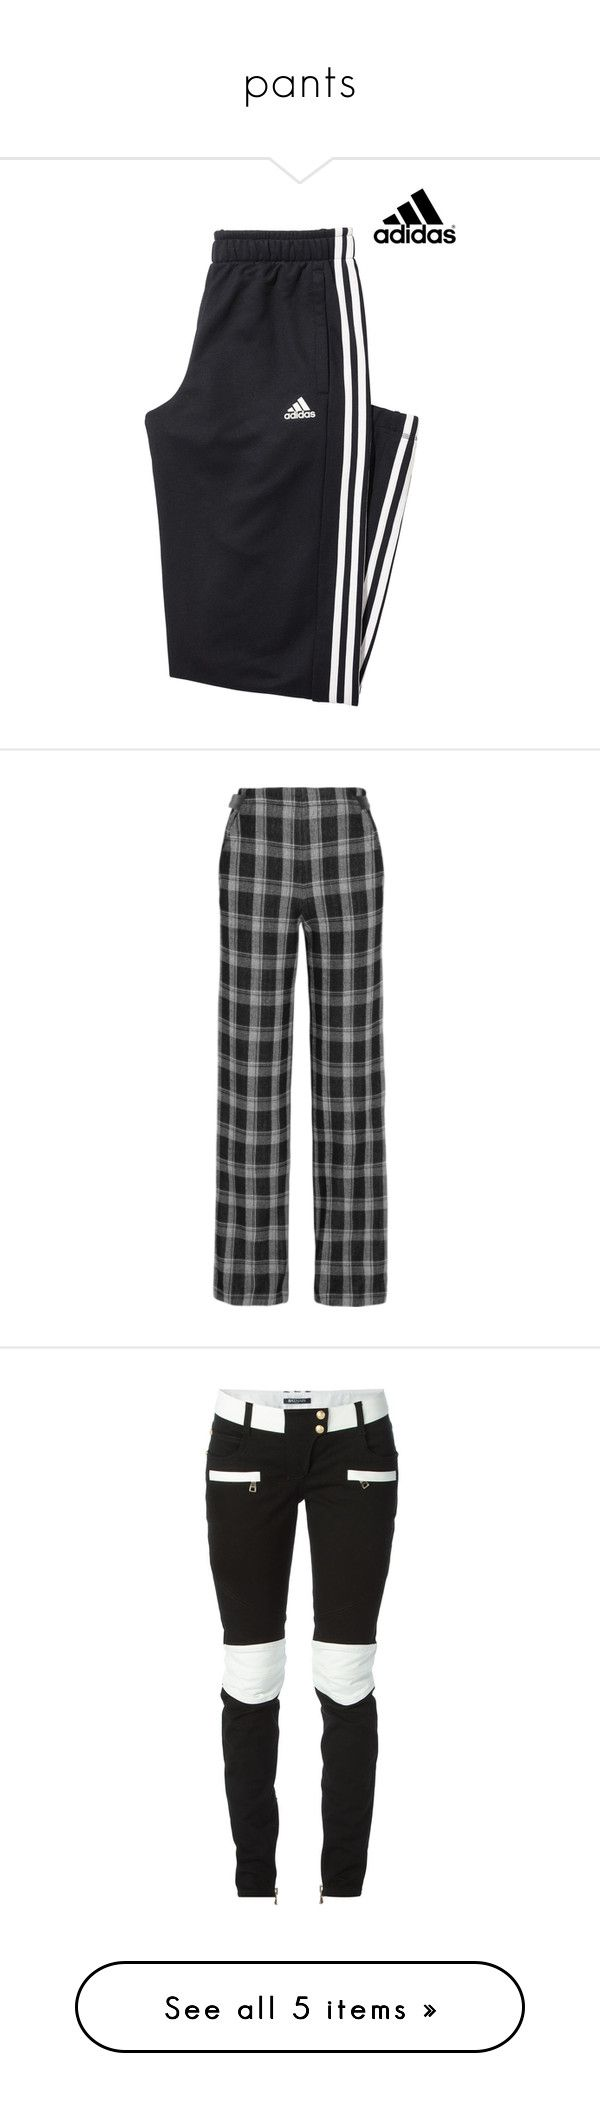 """pants"" by pasteldemerme ❤ liked on Polyvore featuring tops, hoodies, adidas hoodie, sweatshirt hoodies, black and white striped hoodie, striped hoodies, stripe hoodie, pants, bottoms and black"